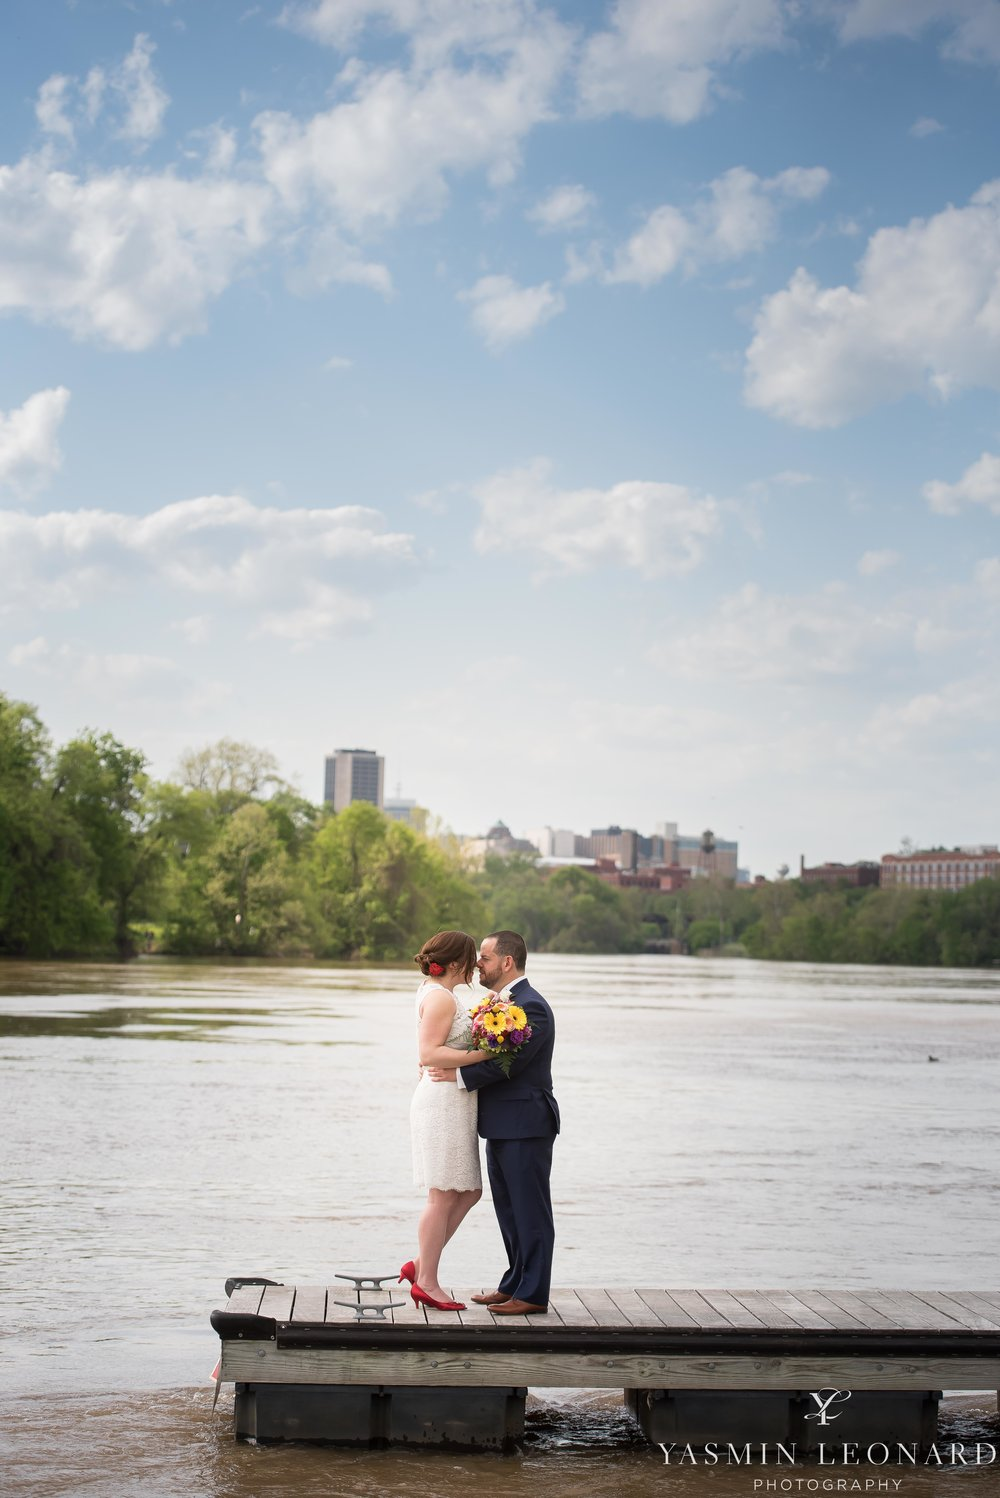 The Boathouse - The boathouse weddings - RVA Weddings - Richmond VA - Richmond VA Weddings - The Boathouse Weddings-32.jpg